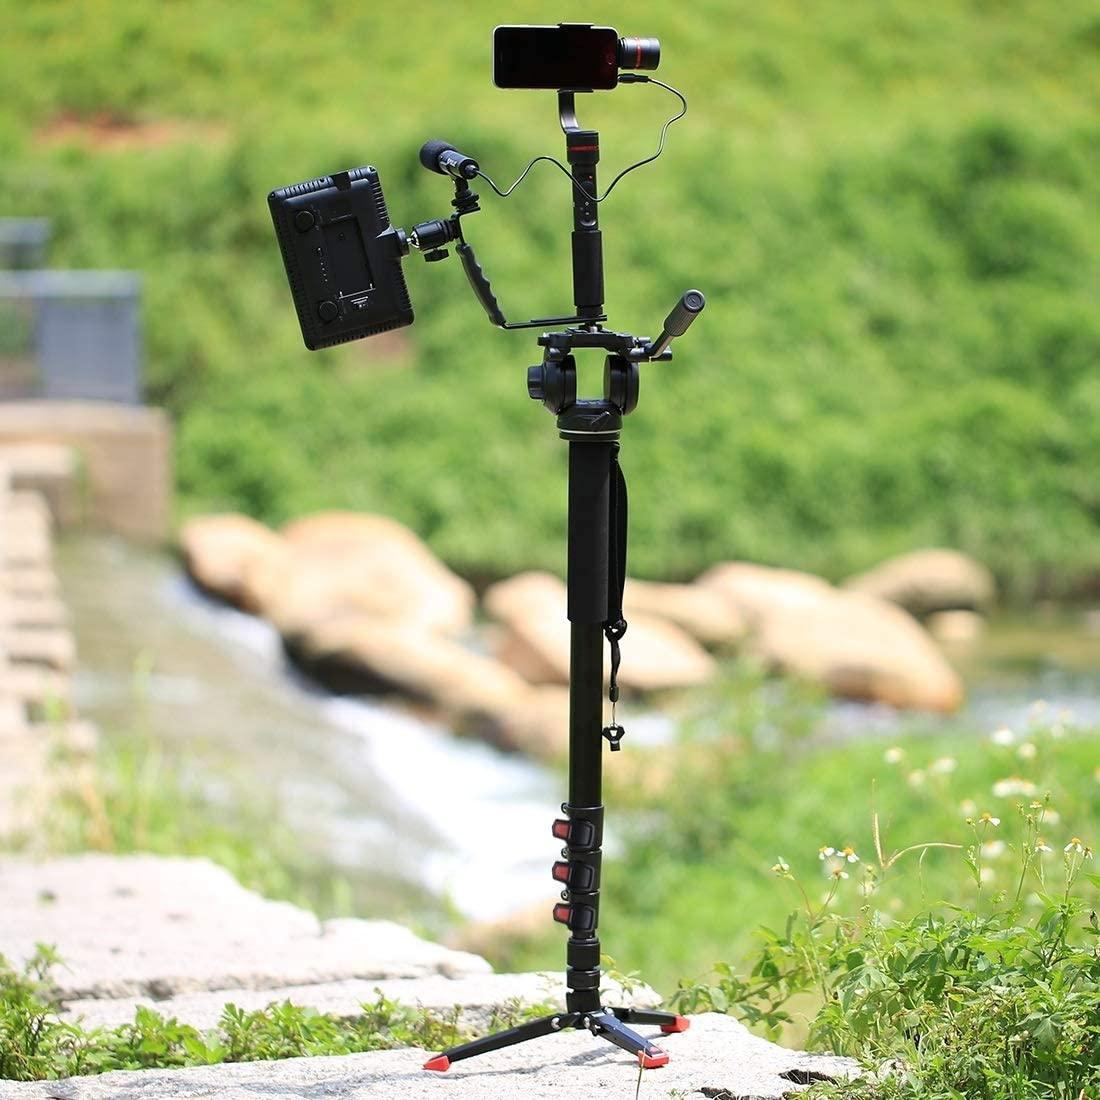 Tripods Monopods Xllcrh Four-Section Telescoping Aluminum-Magnesium Alloy Self-Standing Monopod Fluid Head with Support Base Bracket